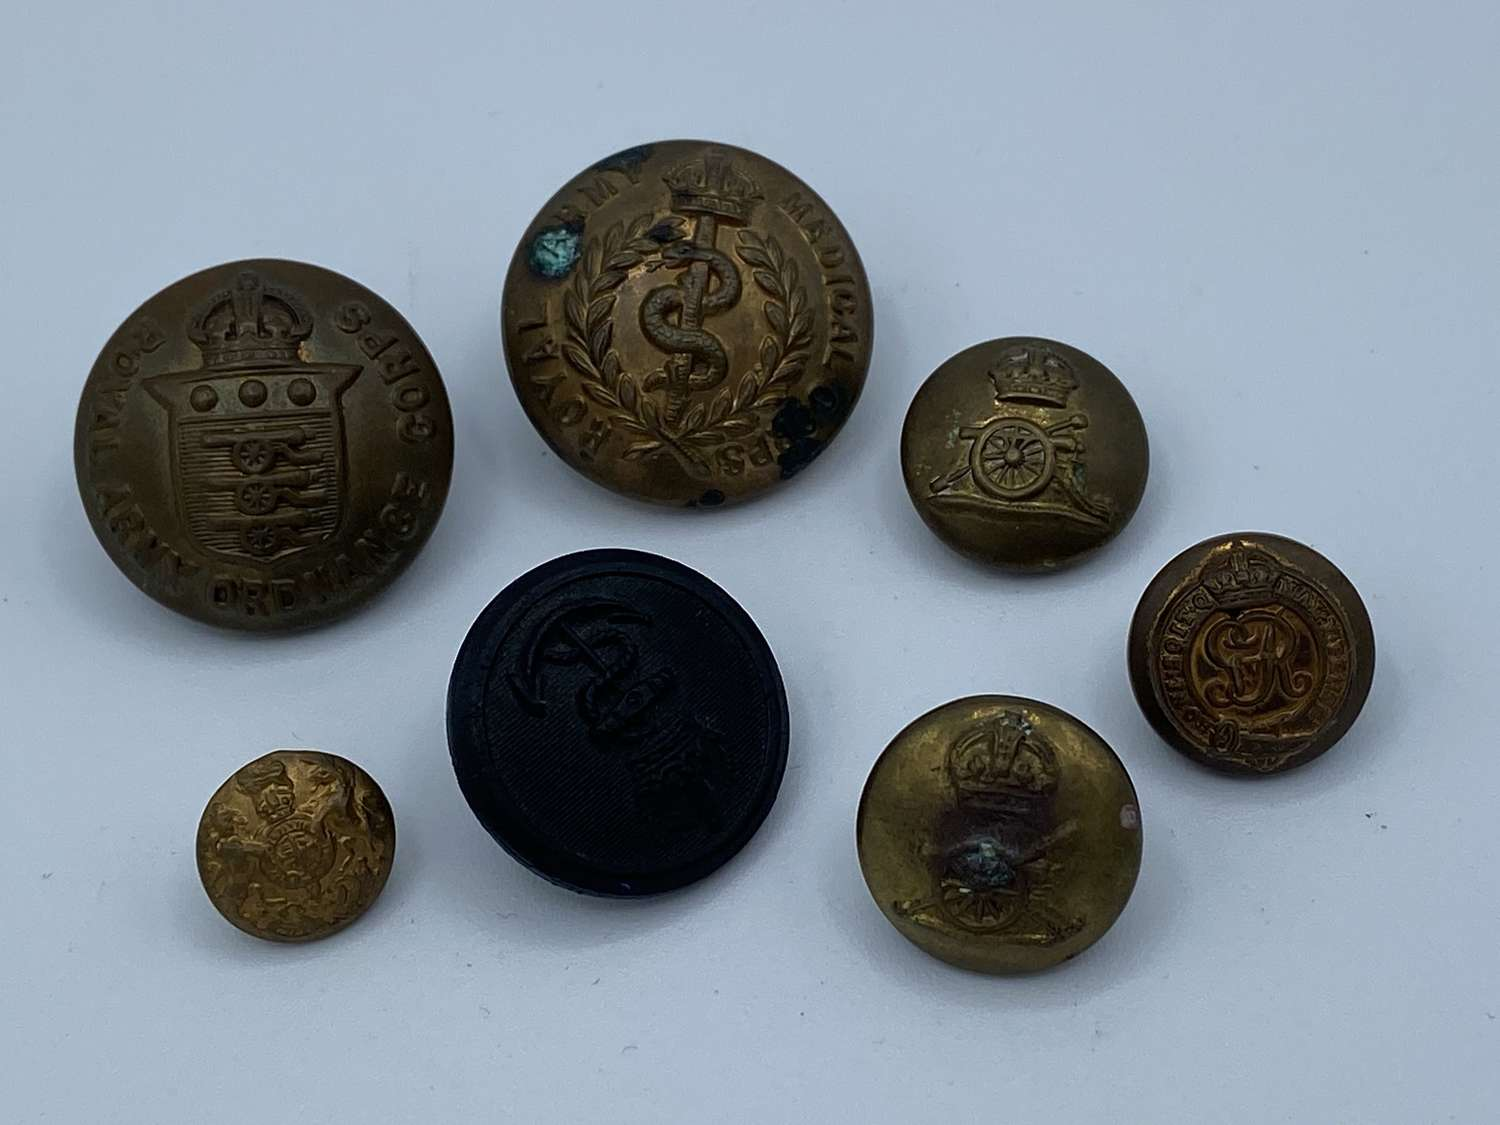 Small Joblot Of WW2 British Army Buttons RA RE RAOC RAMC Etc